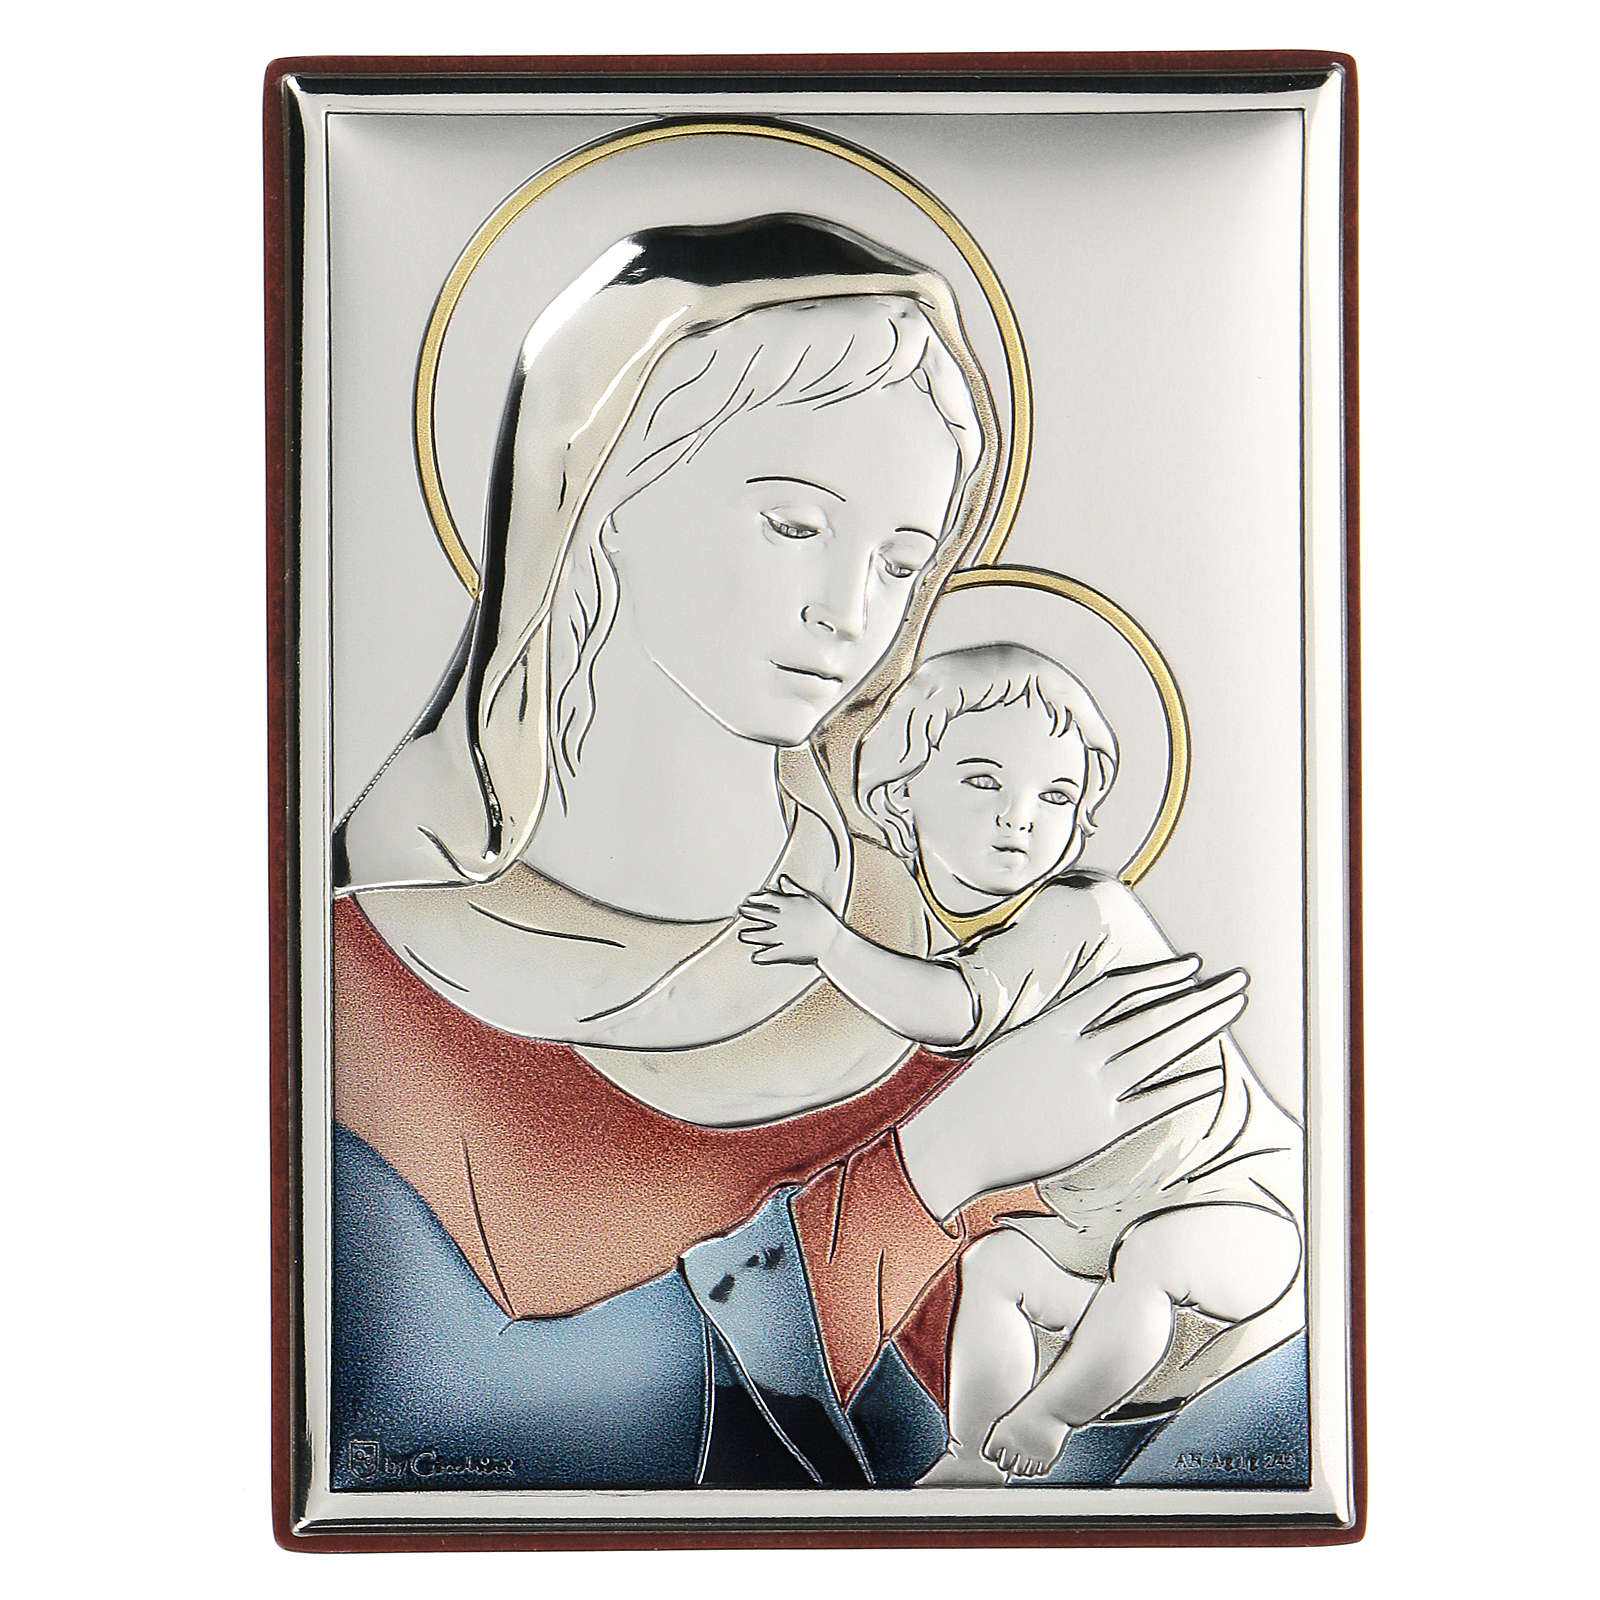 Bilaminate bas-relief Virgin Mary with Baby Jesus 11x8 cm 4